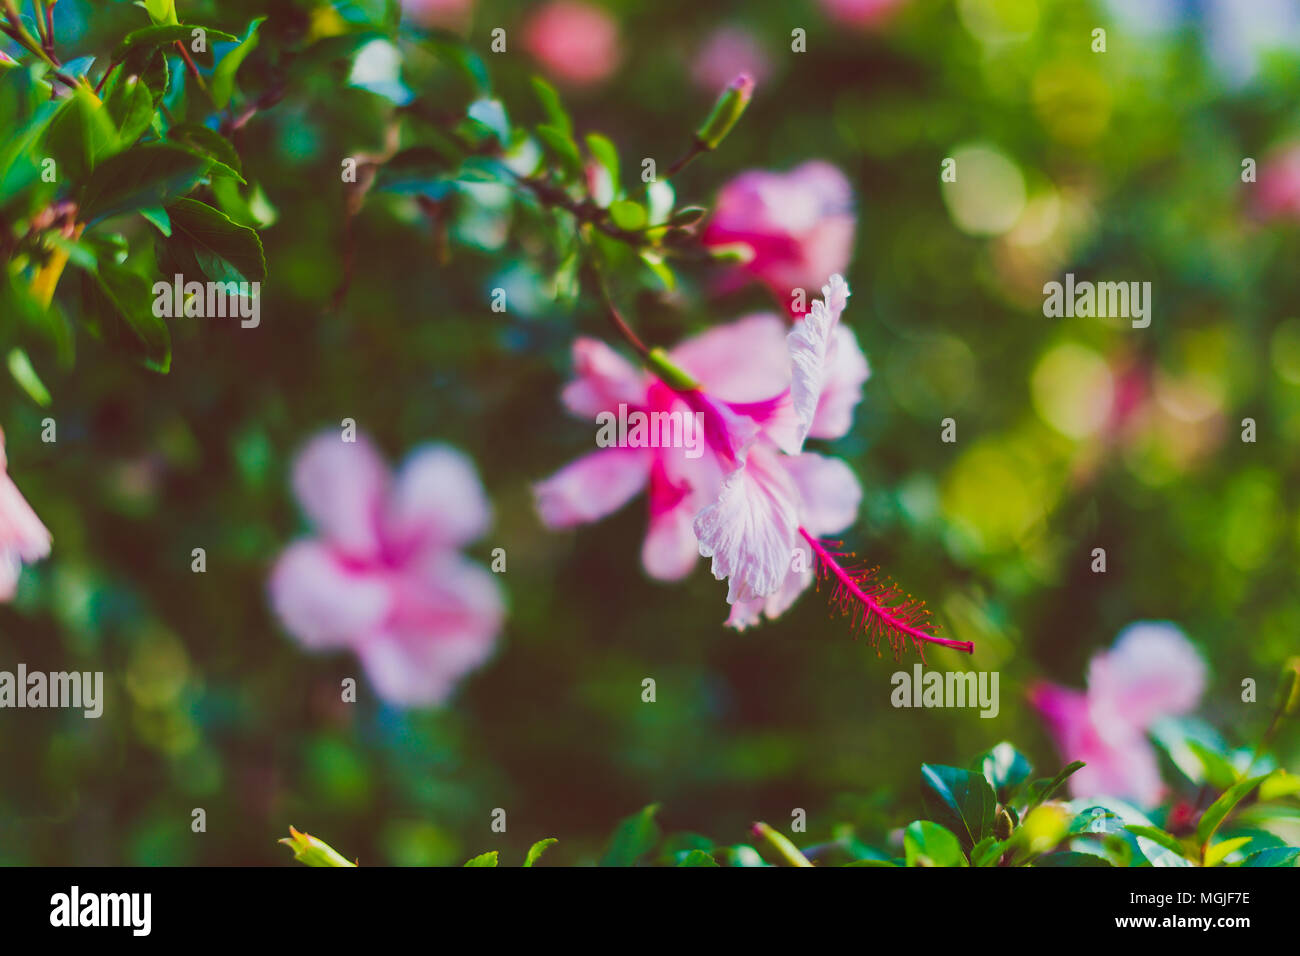 Pink Flowers Australia Exotic Subtropical Hibiscus Trees With Pink Flowers In Bloom Shot